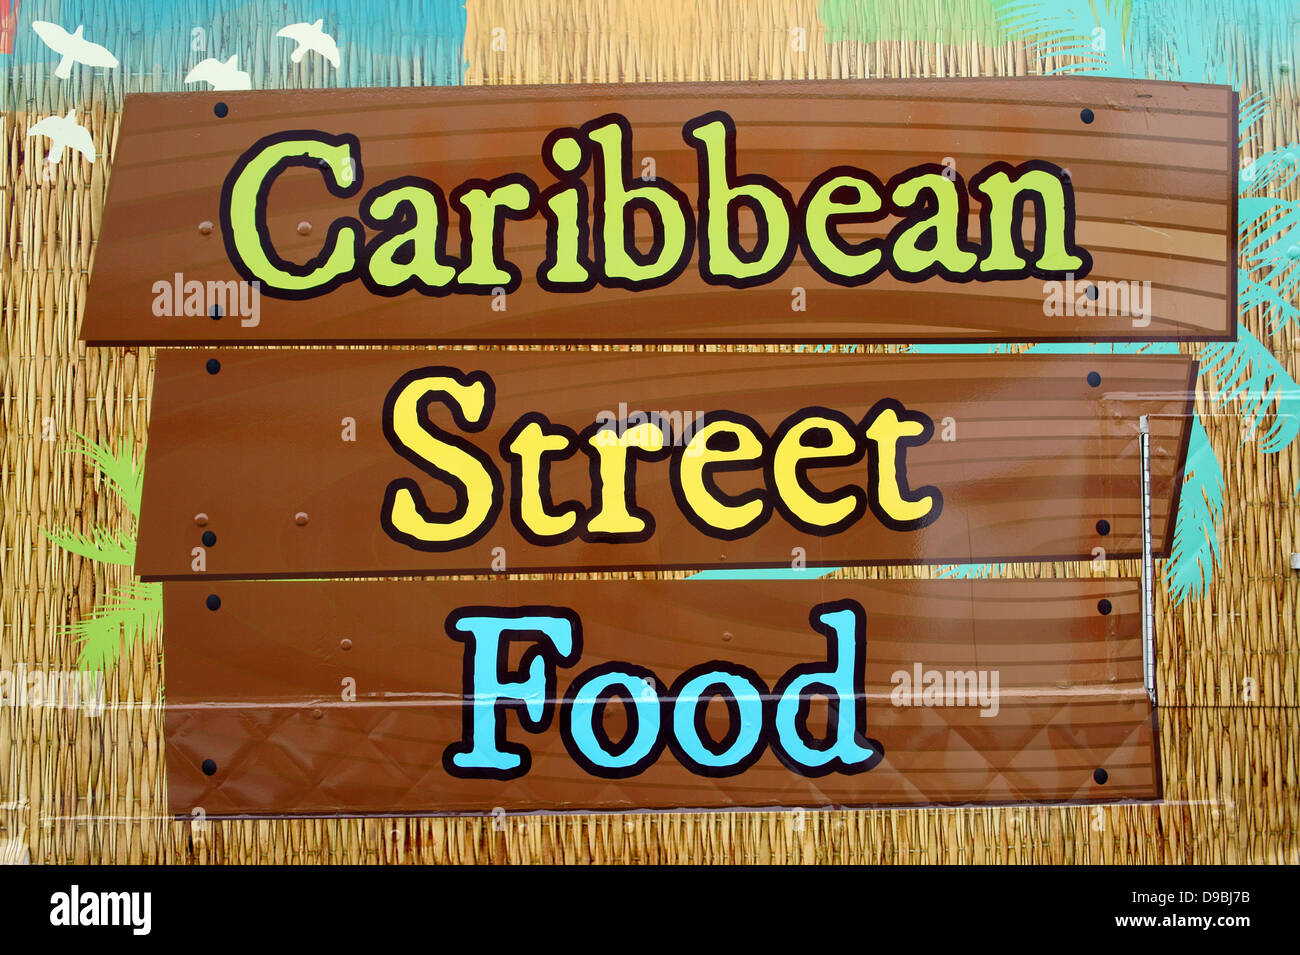 caribbean-street-food-sign-at-the-car-fr